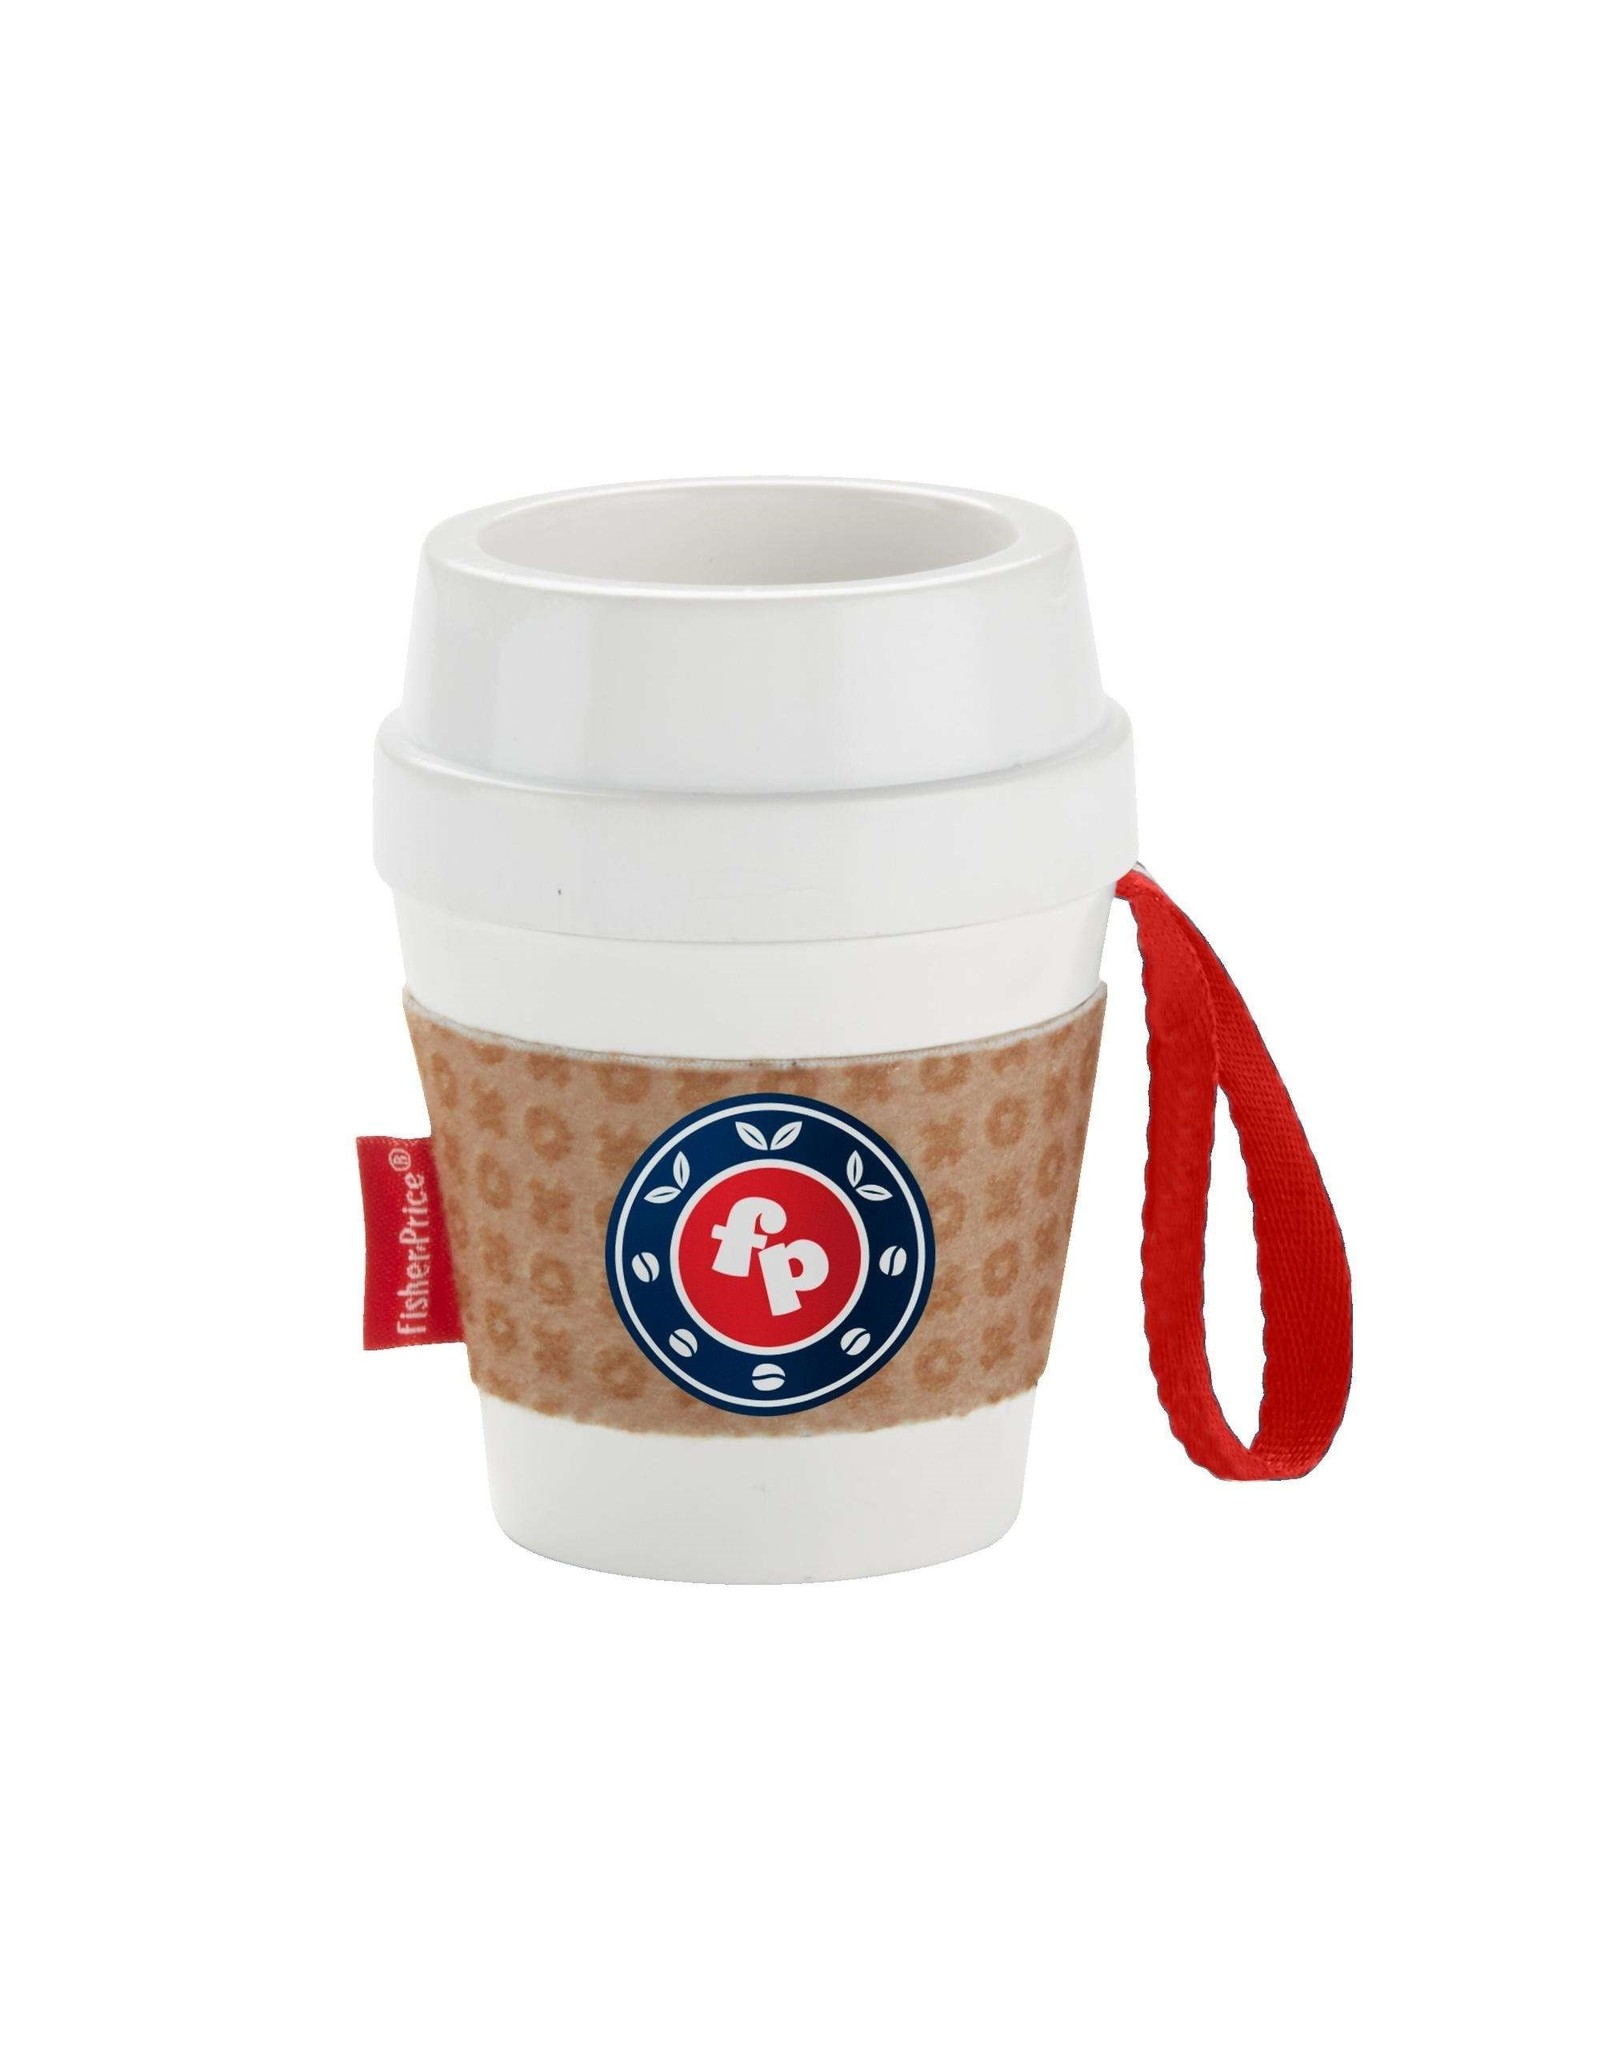 Fisher Price Fisher Price Coffee Cup Teether